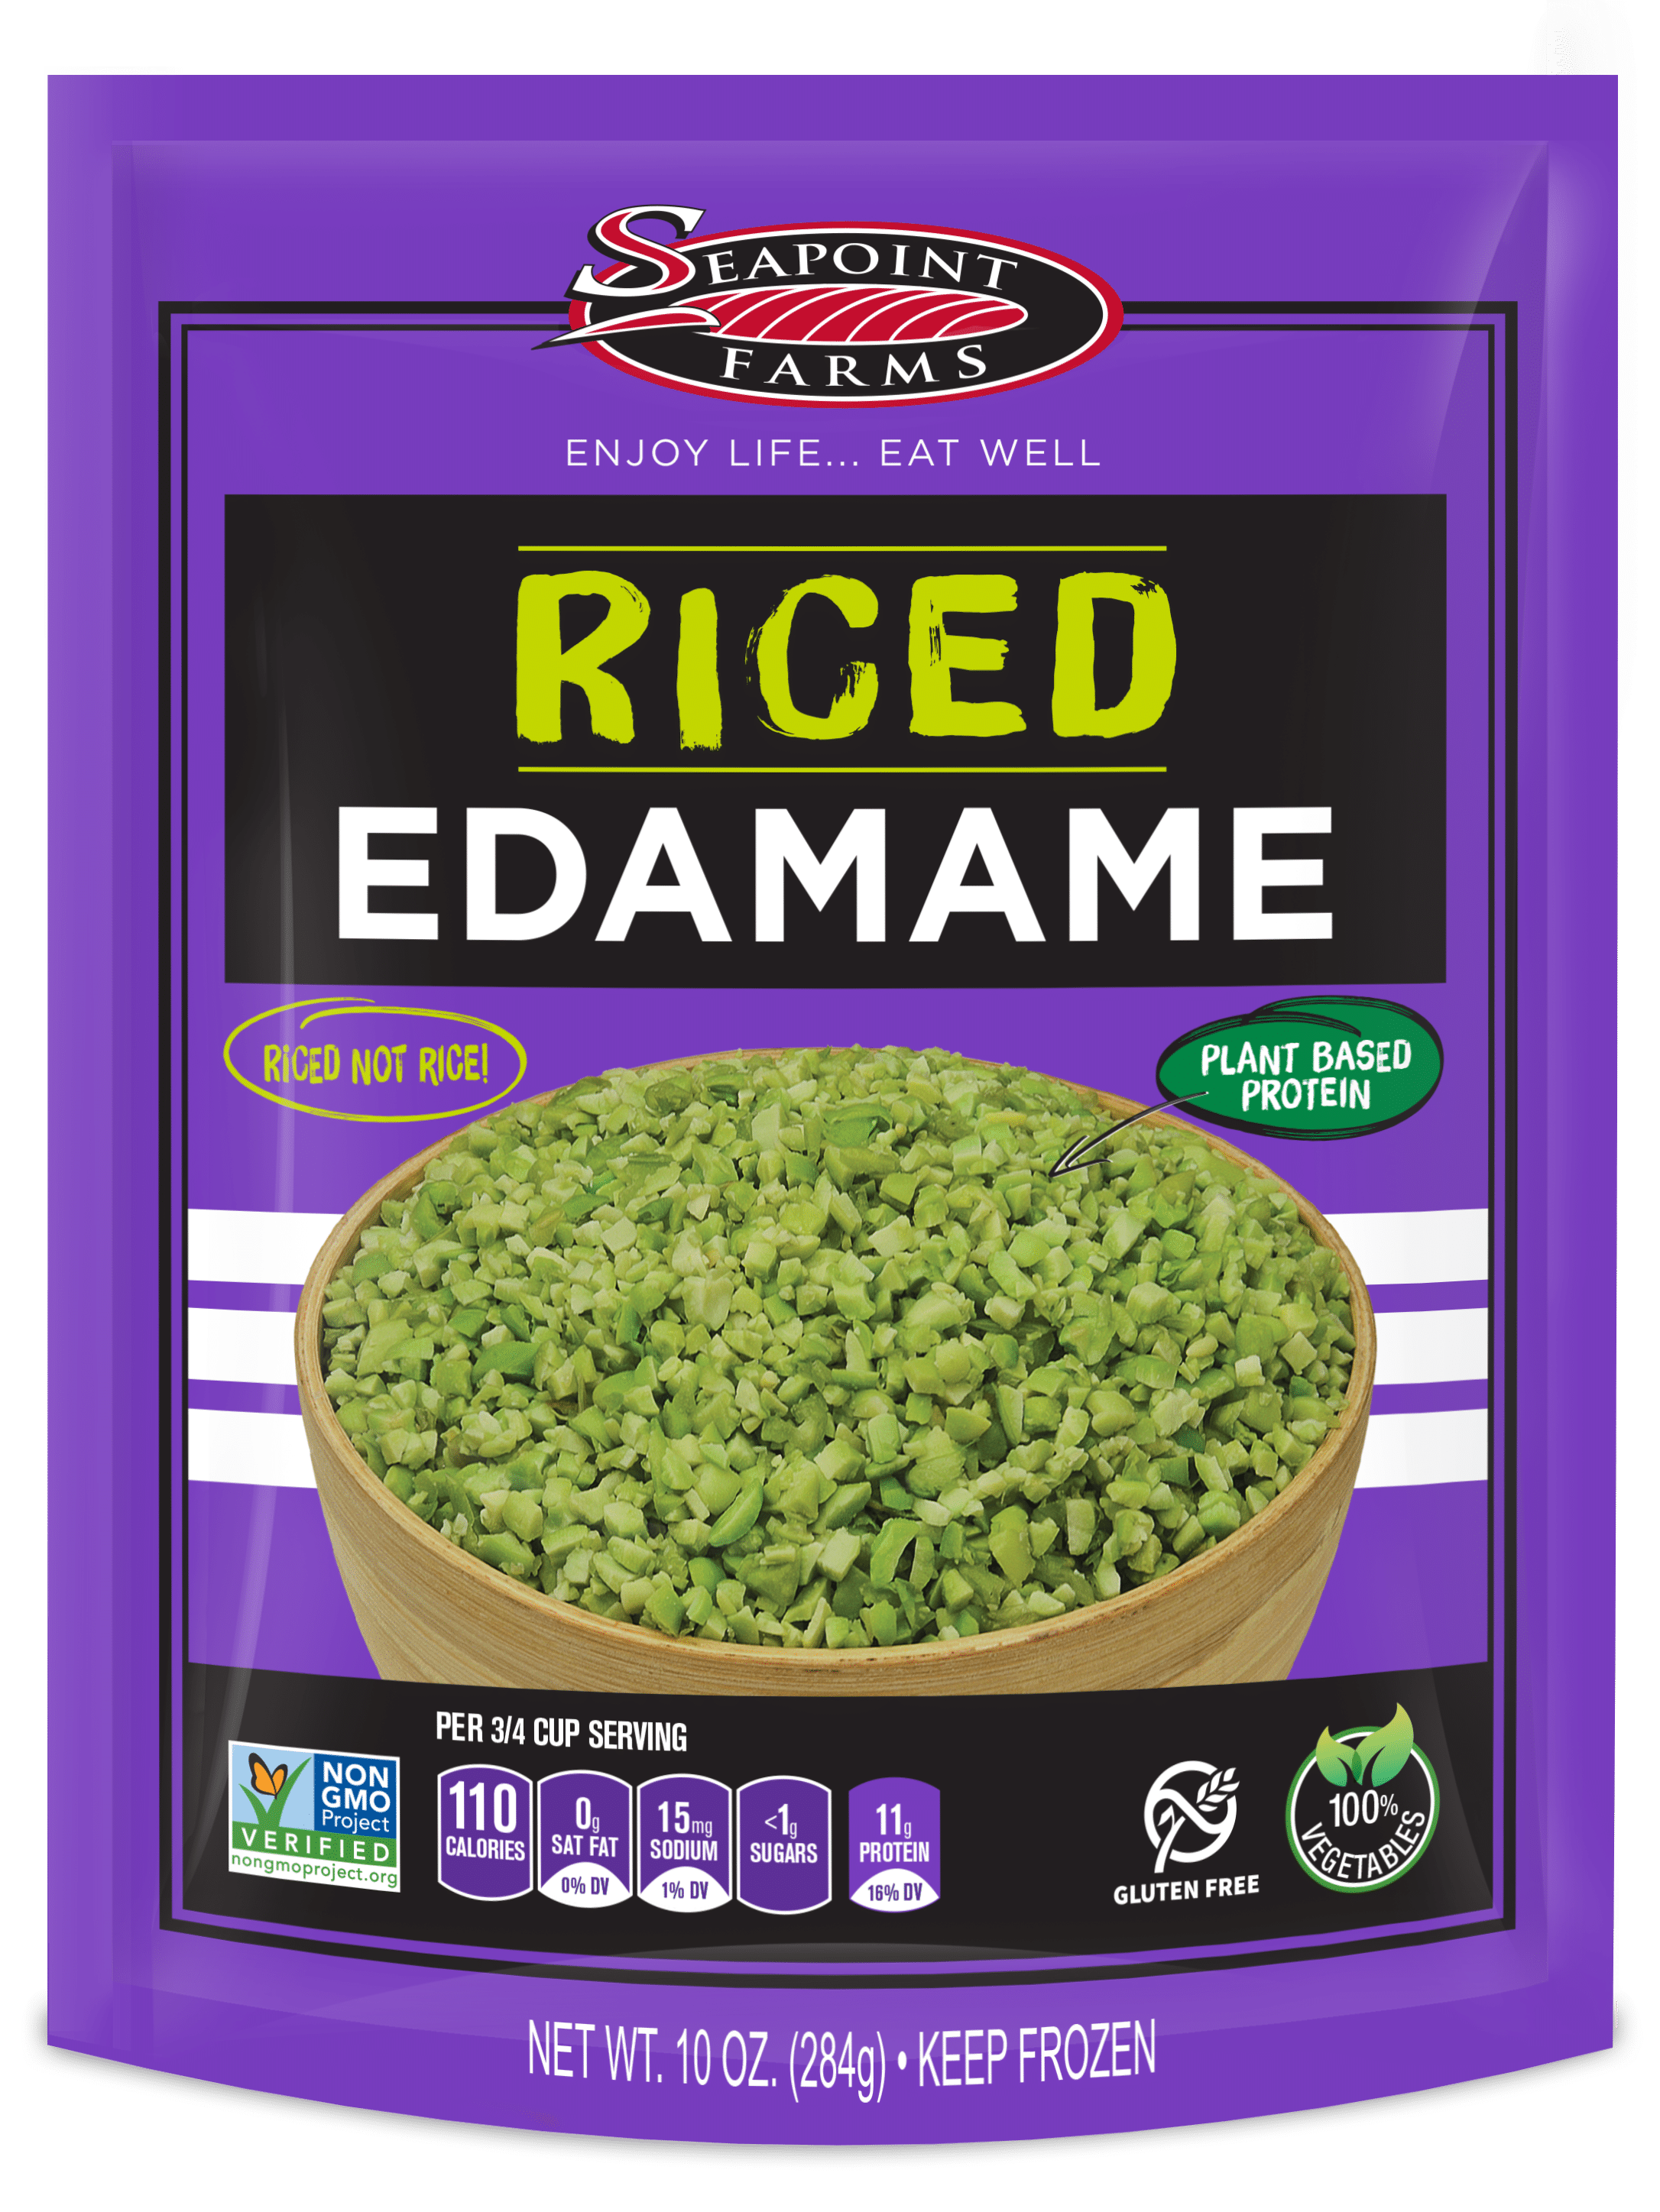 Seapoint Farms Introduces Riced, Edamame-Based Rice Alternatives